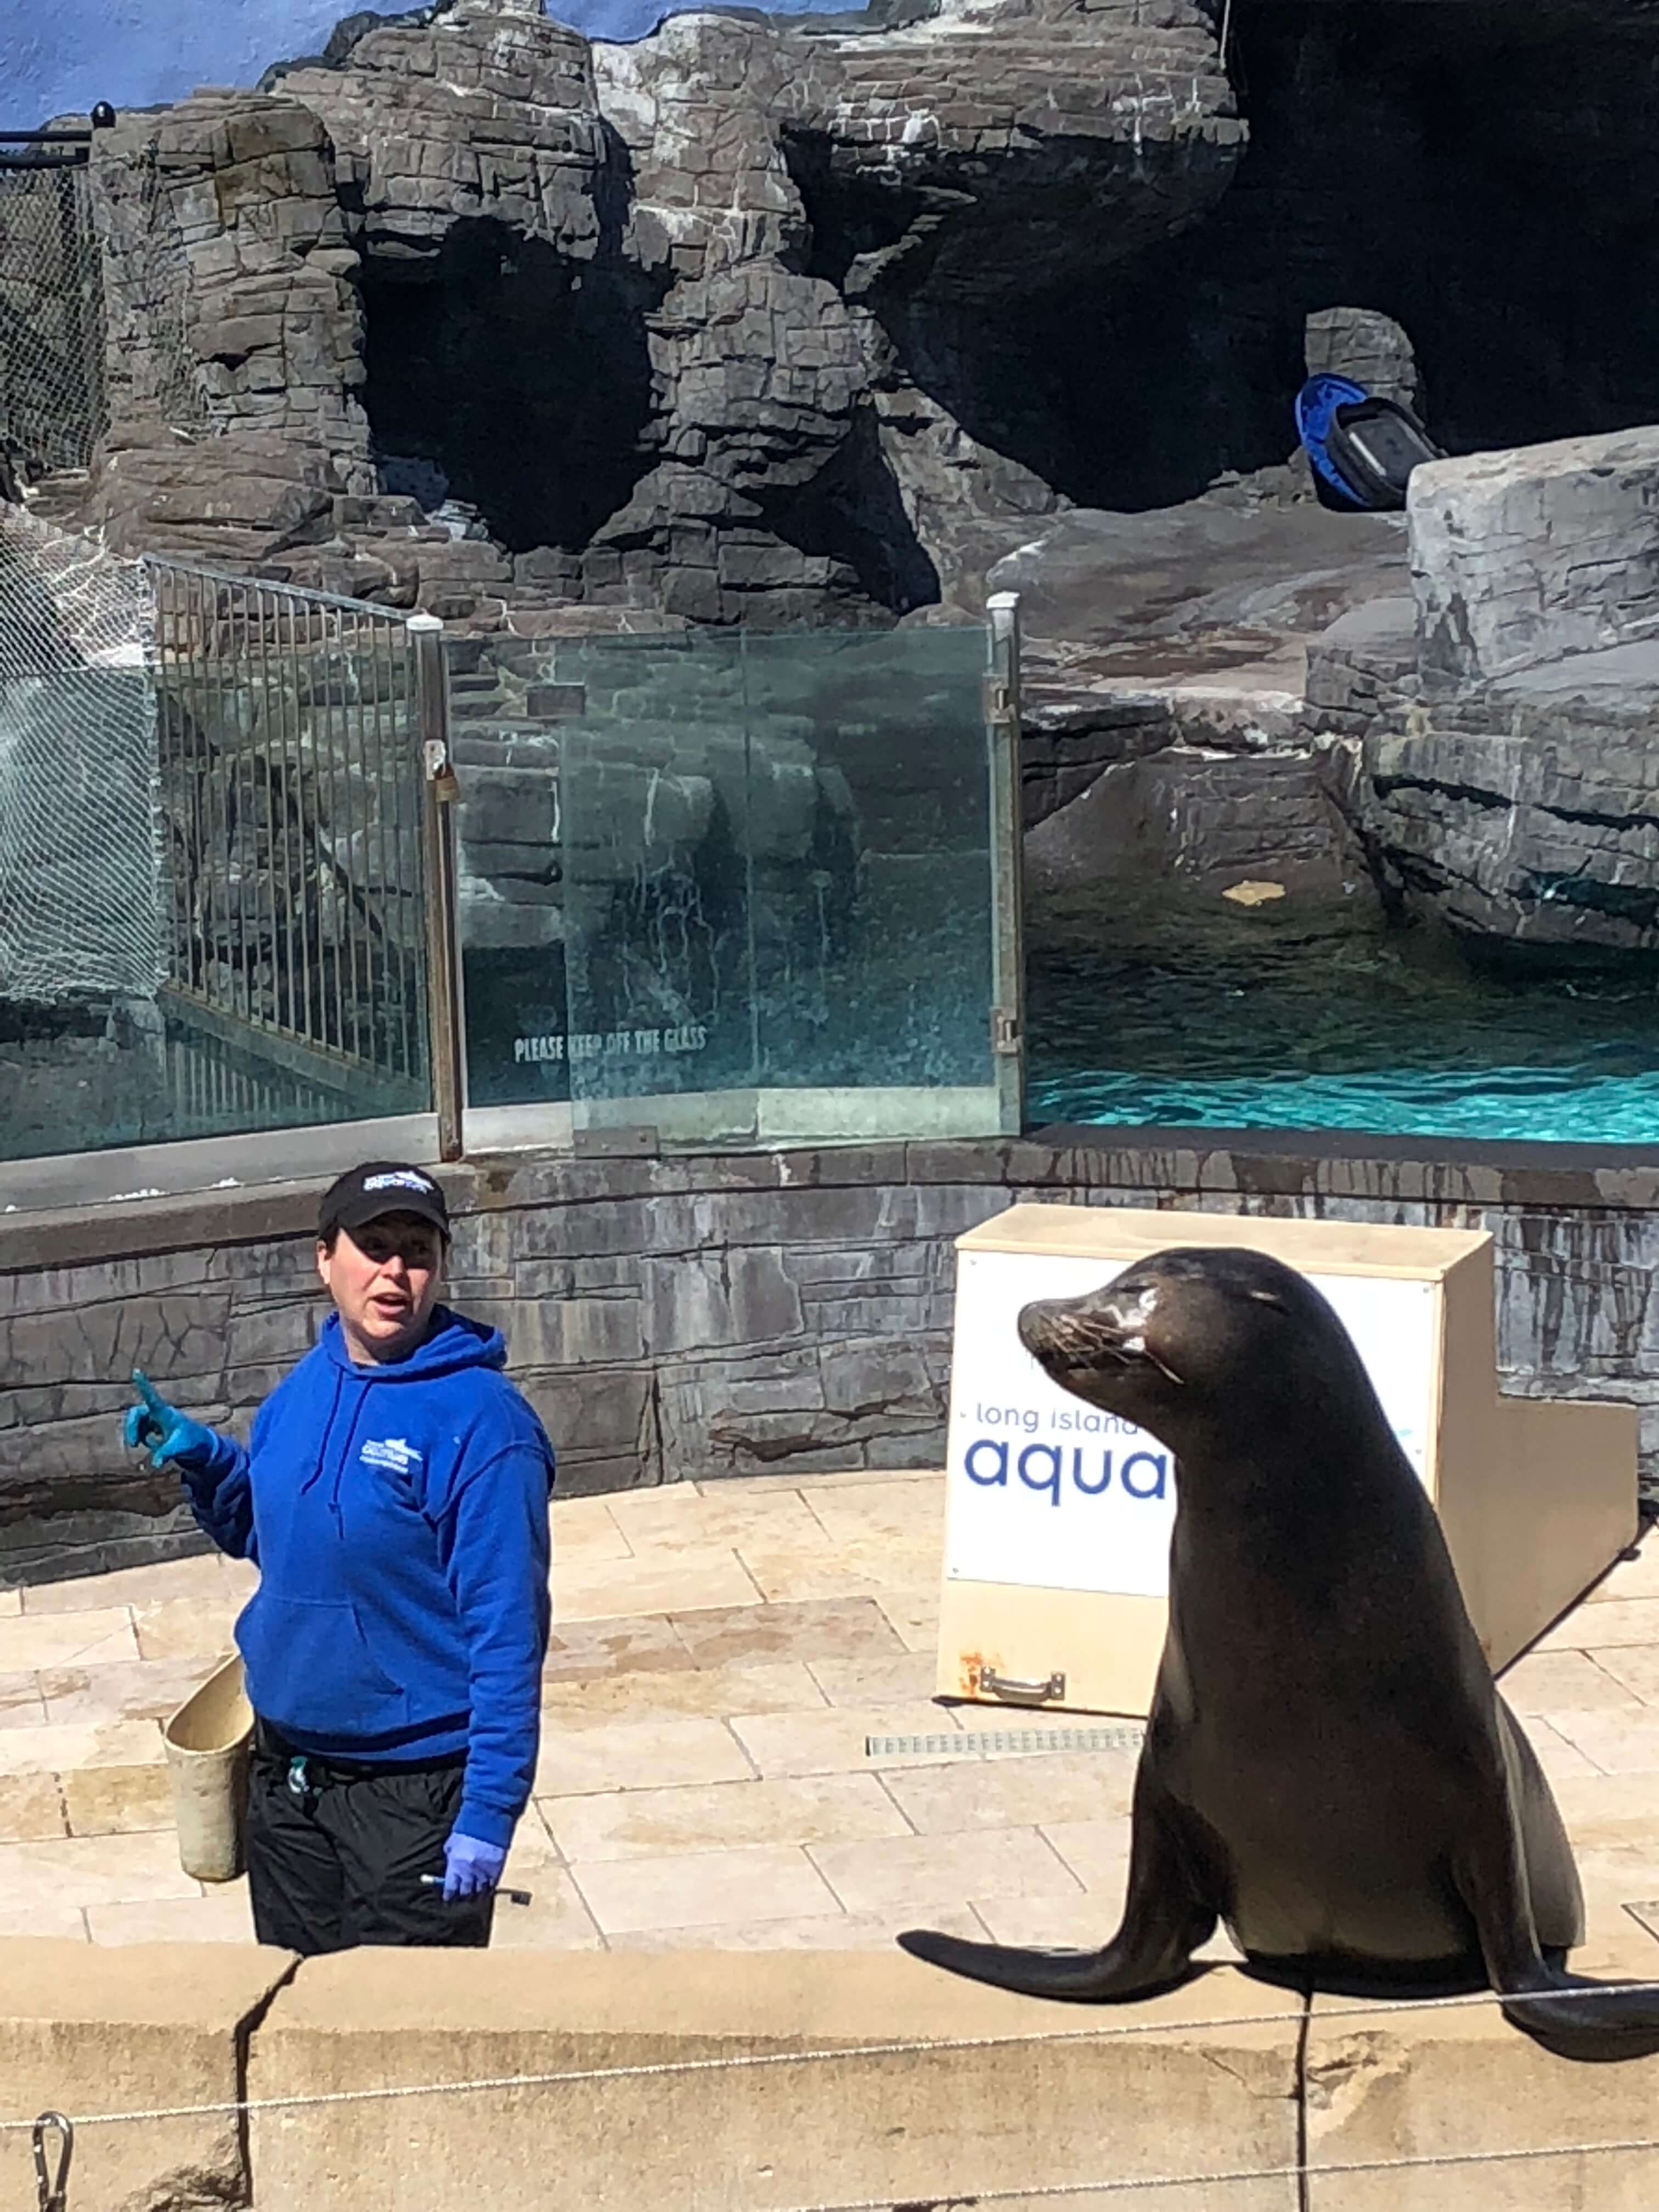 sea lion show at the long island aquarium